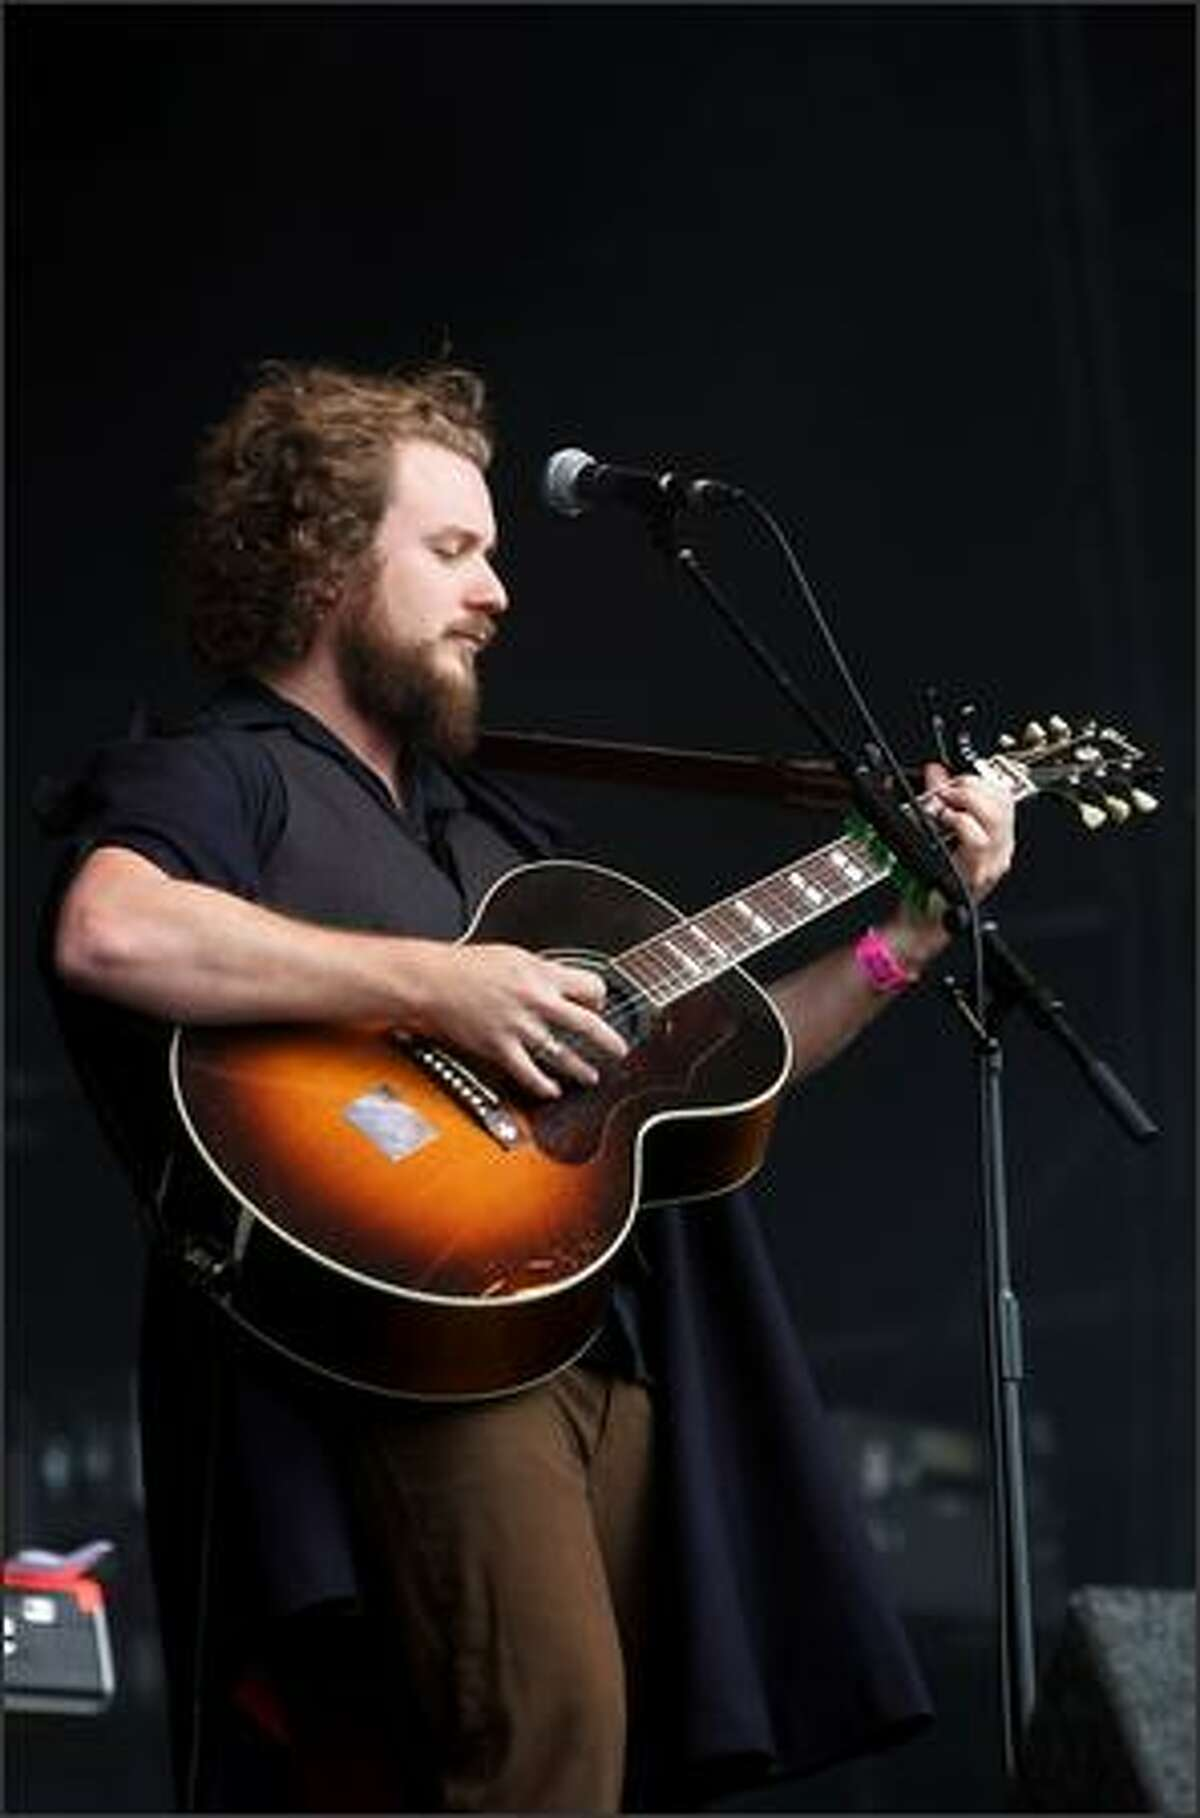 Singer Jim James of American rock band My Morning Jacket performs live on stage during The Hop Farm Festival at The Hop Farm on Sunday in Paddock Wood, Kent, England.